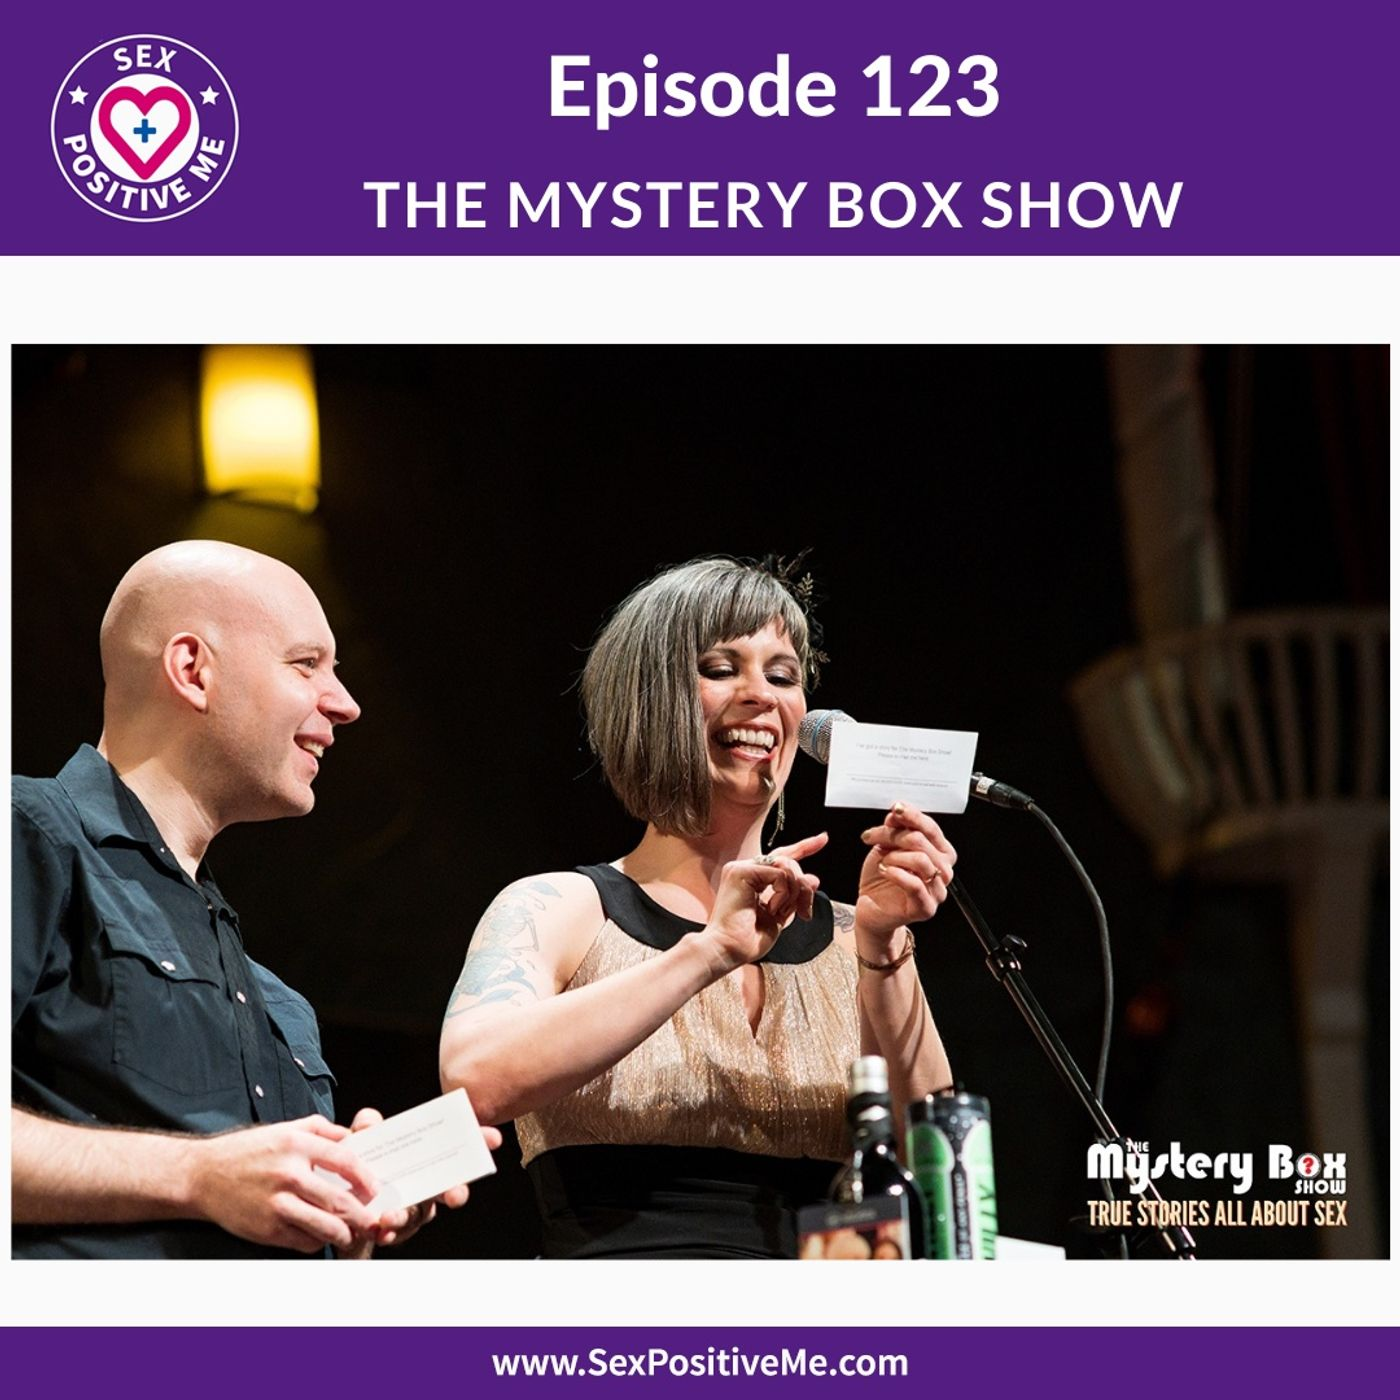 Sex Positive Me - E123_TheMysteryBoxShow